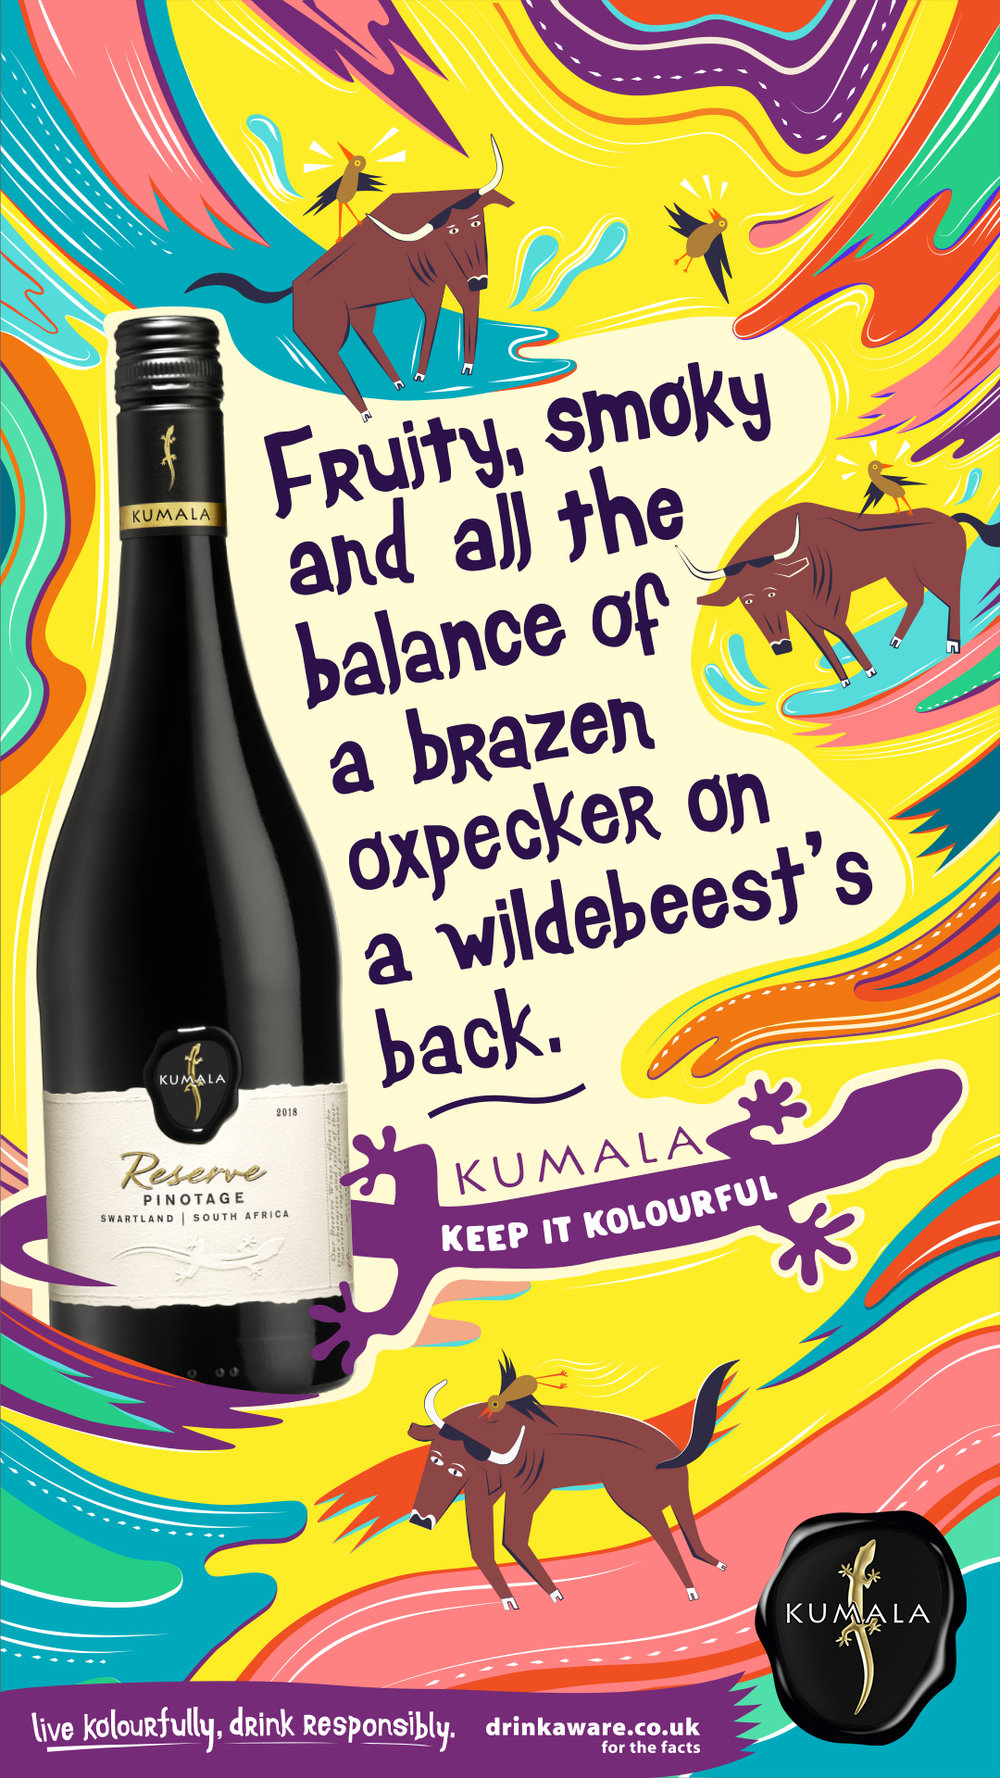 Kumala_Pinotage_ROADSIDED6_180910.jpg